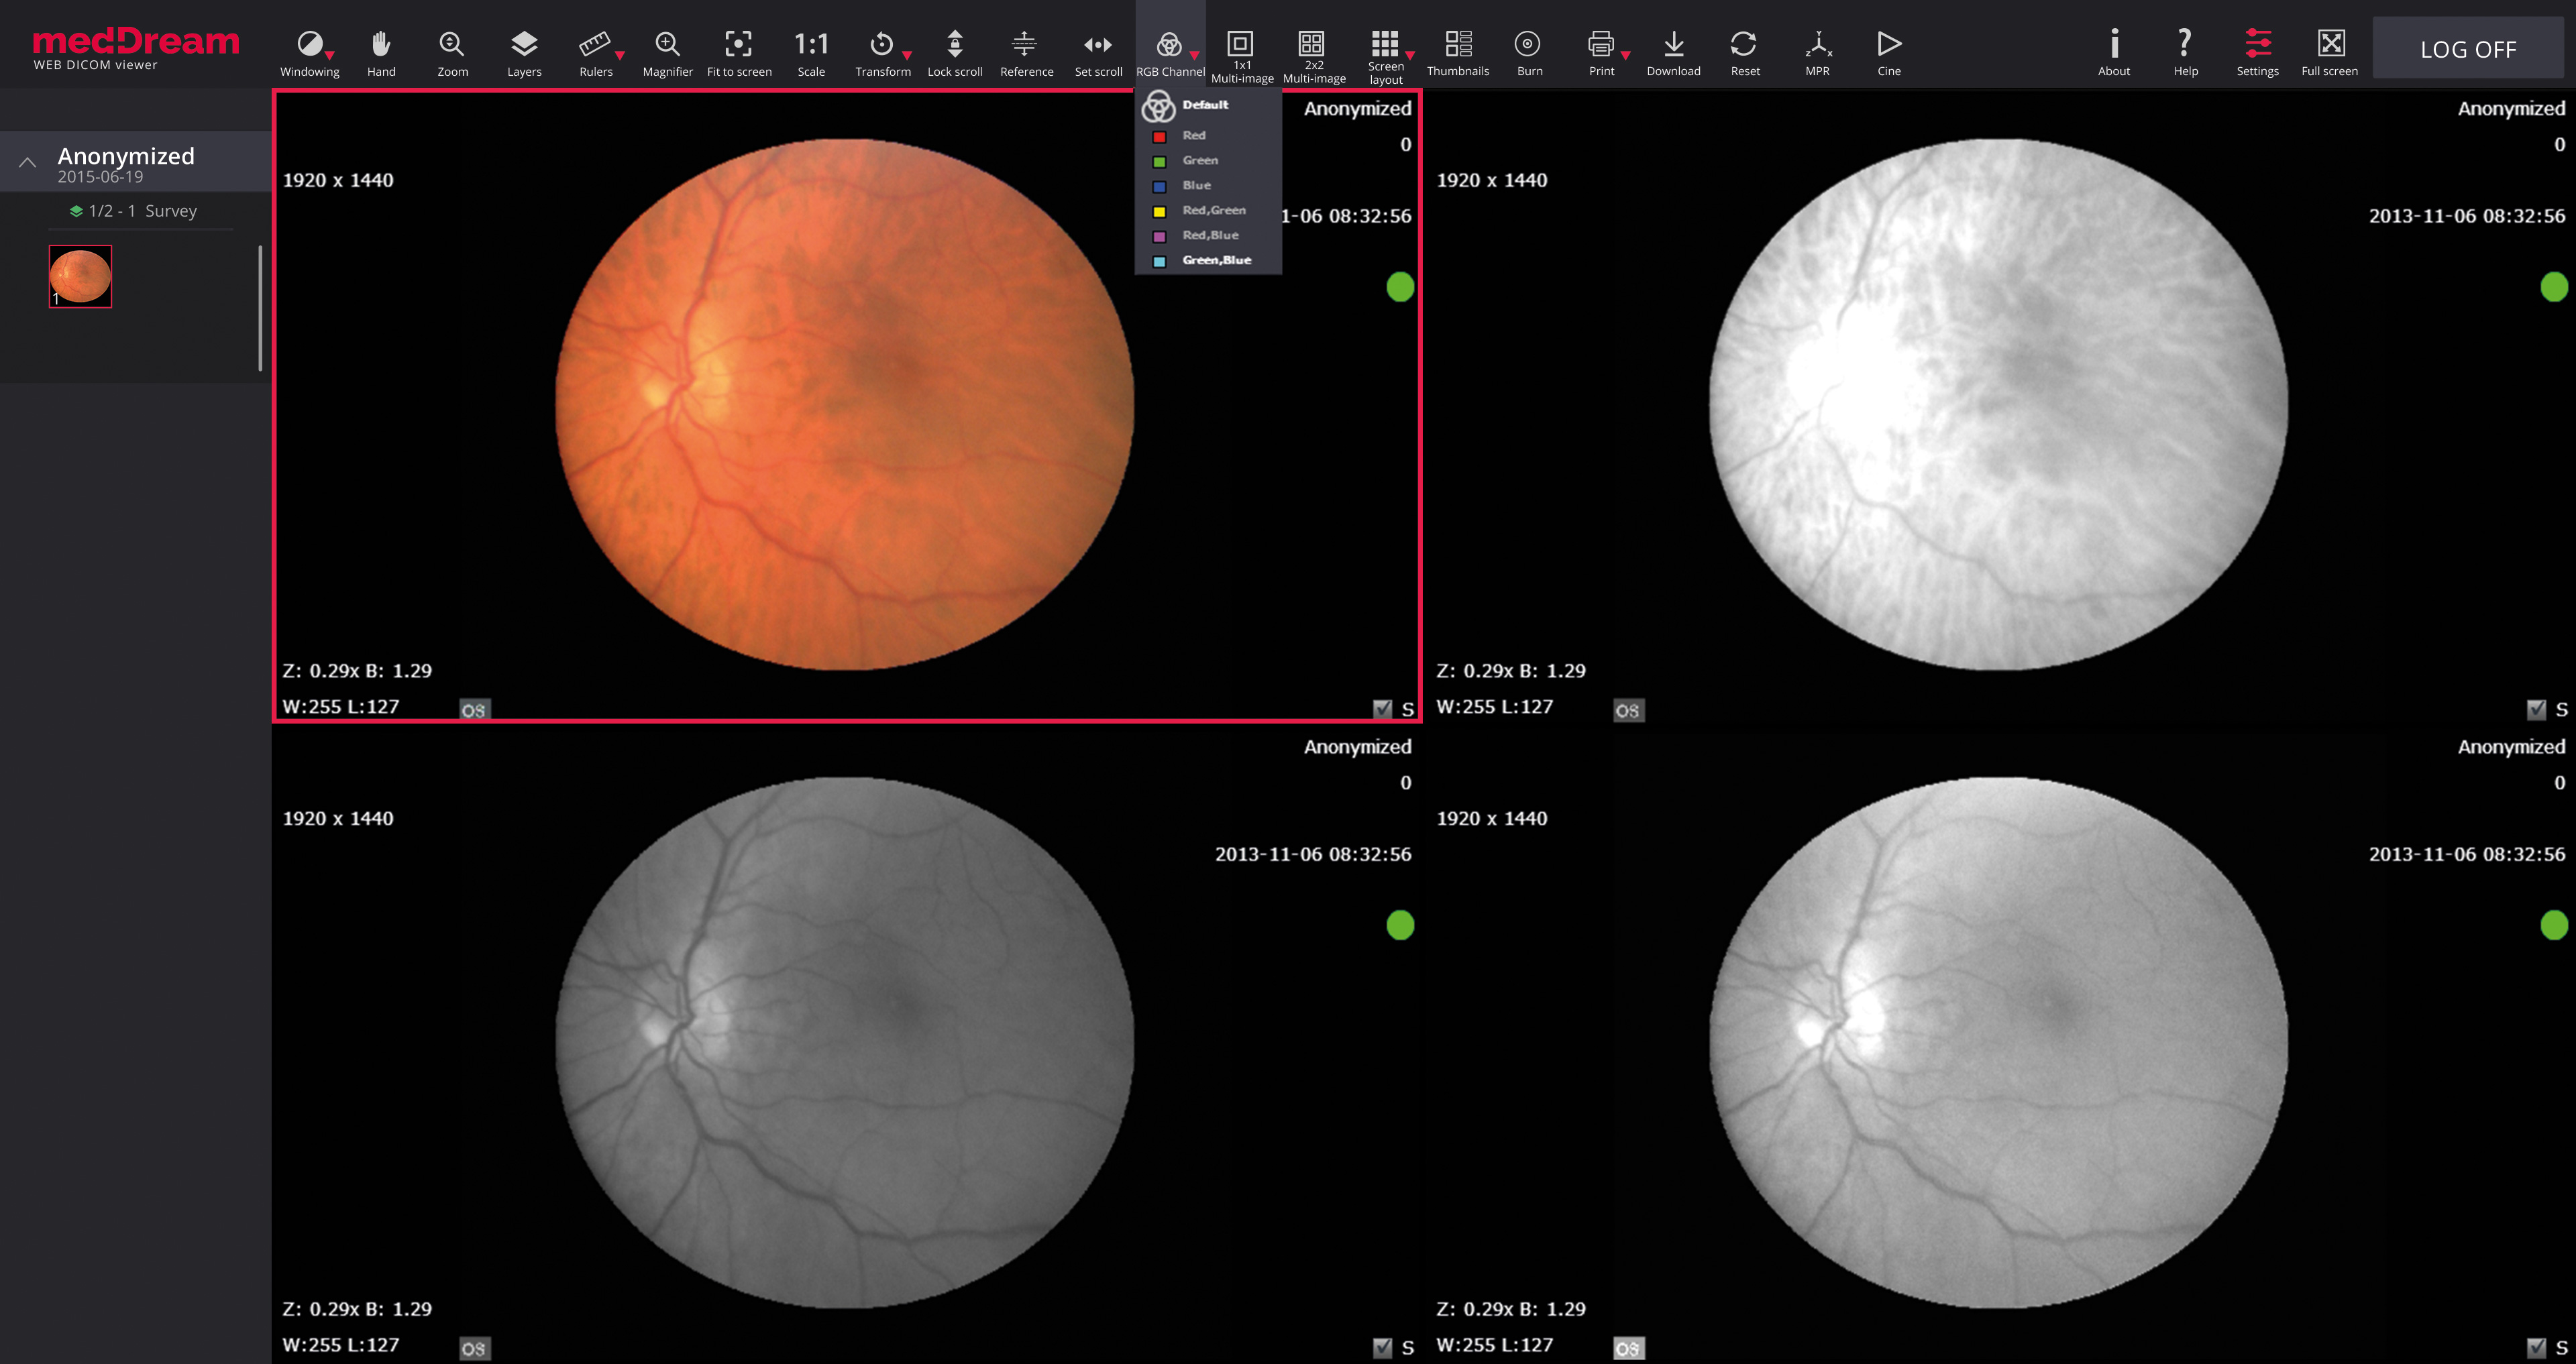 Opthalmology HTML5 Dicom viewer MedDream